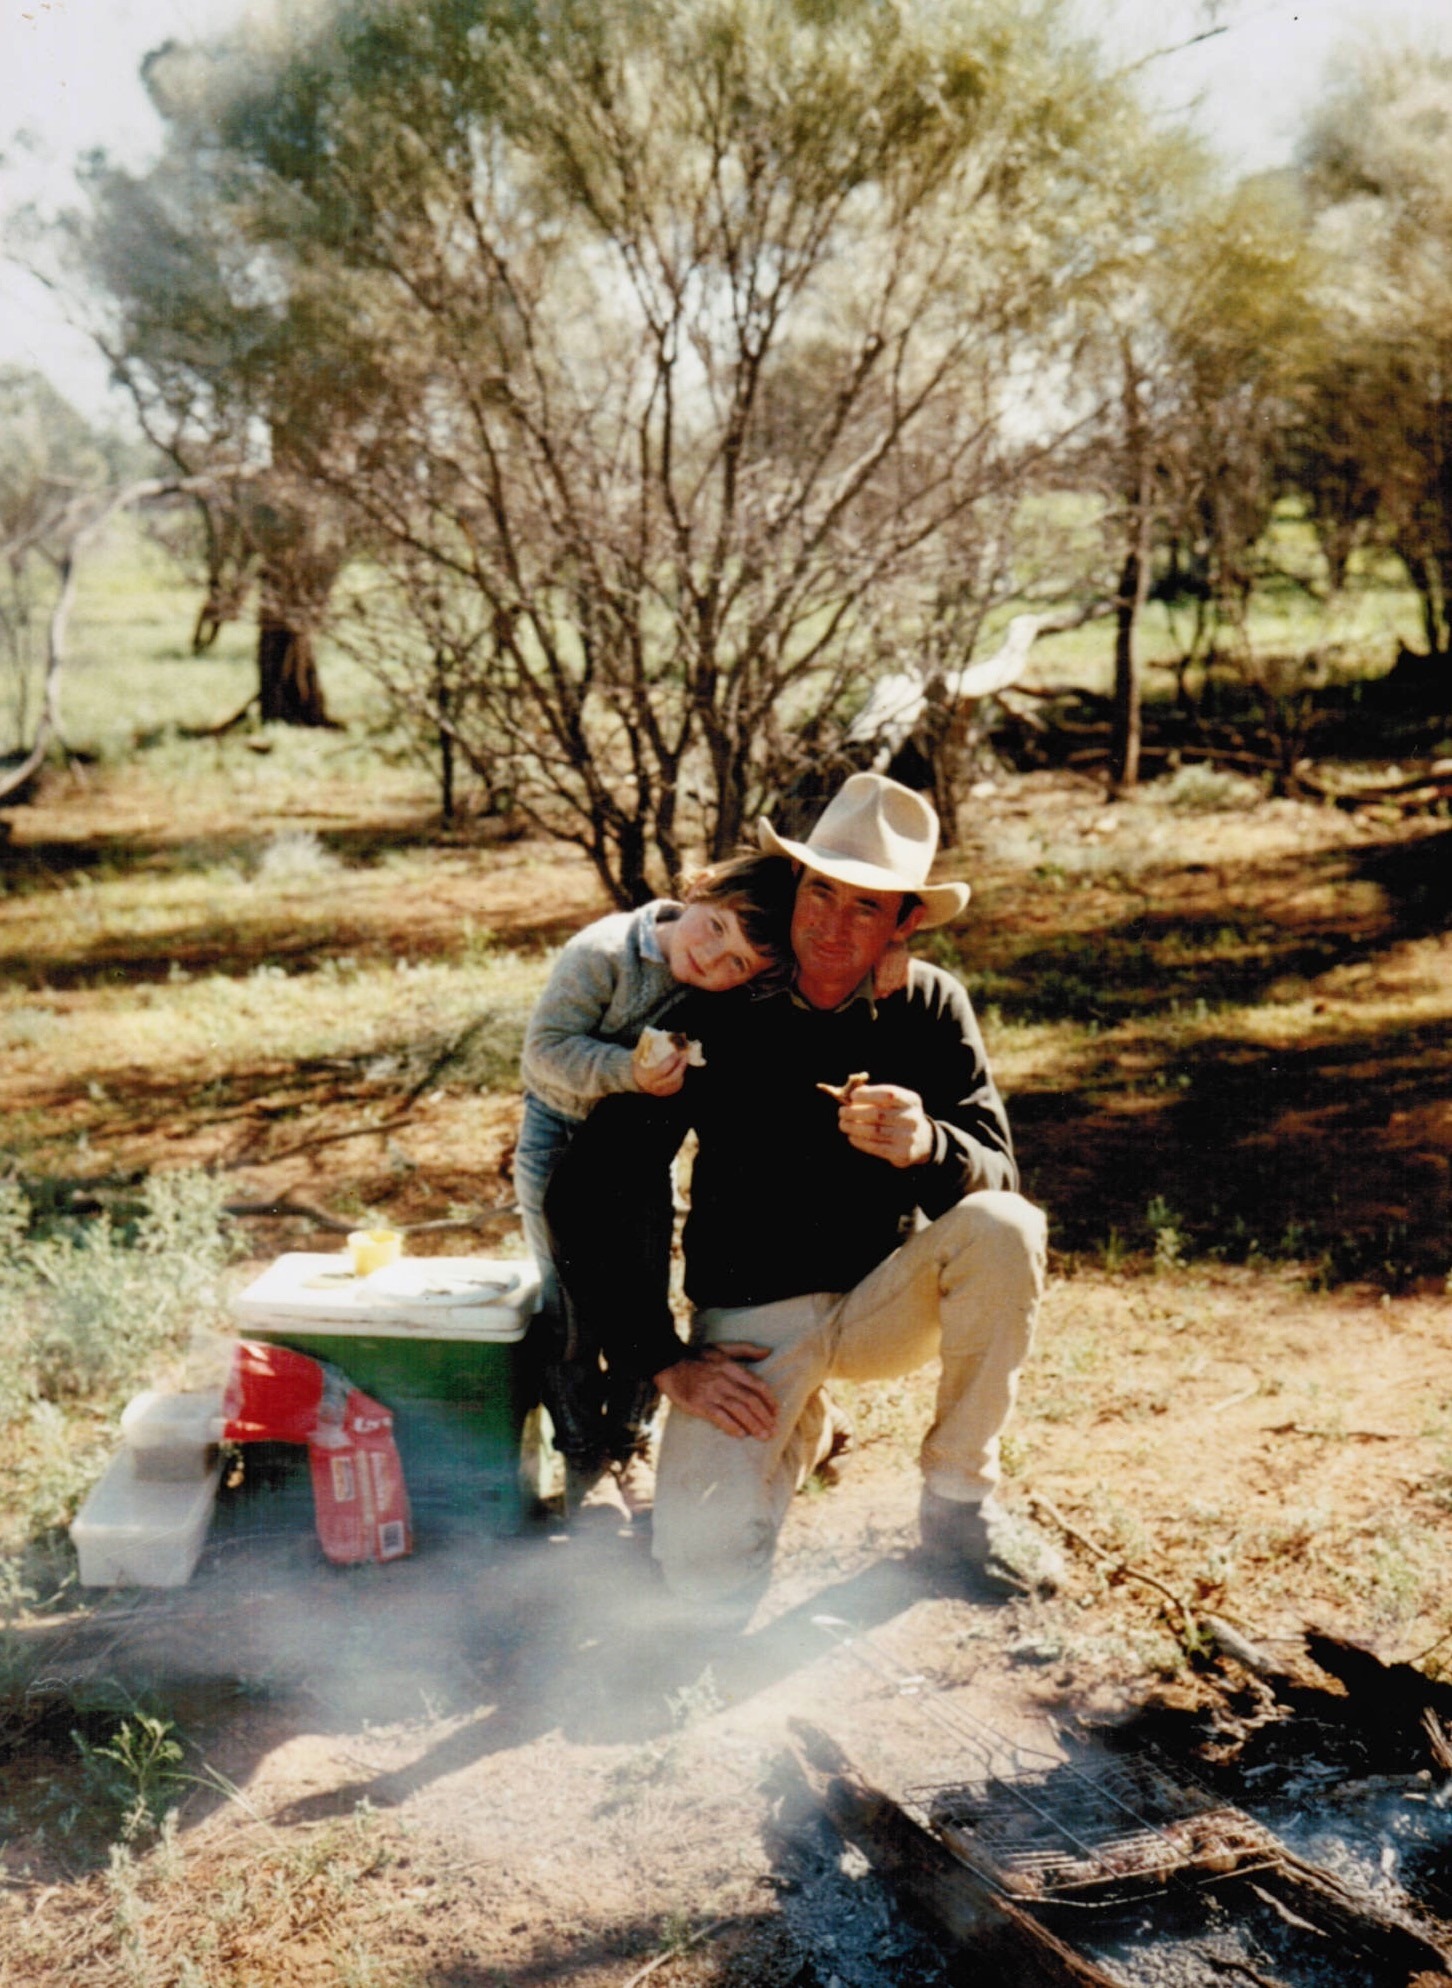 Lisa having a 'Sunday Picnic' at Eurella with her father Chris Stanmore, c.1988,image supplied.